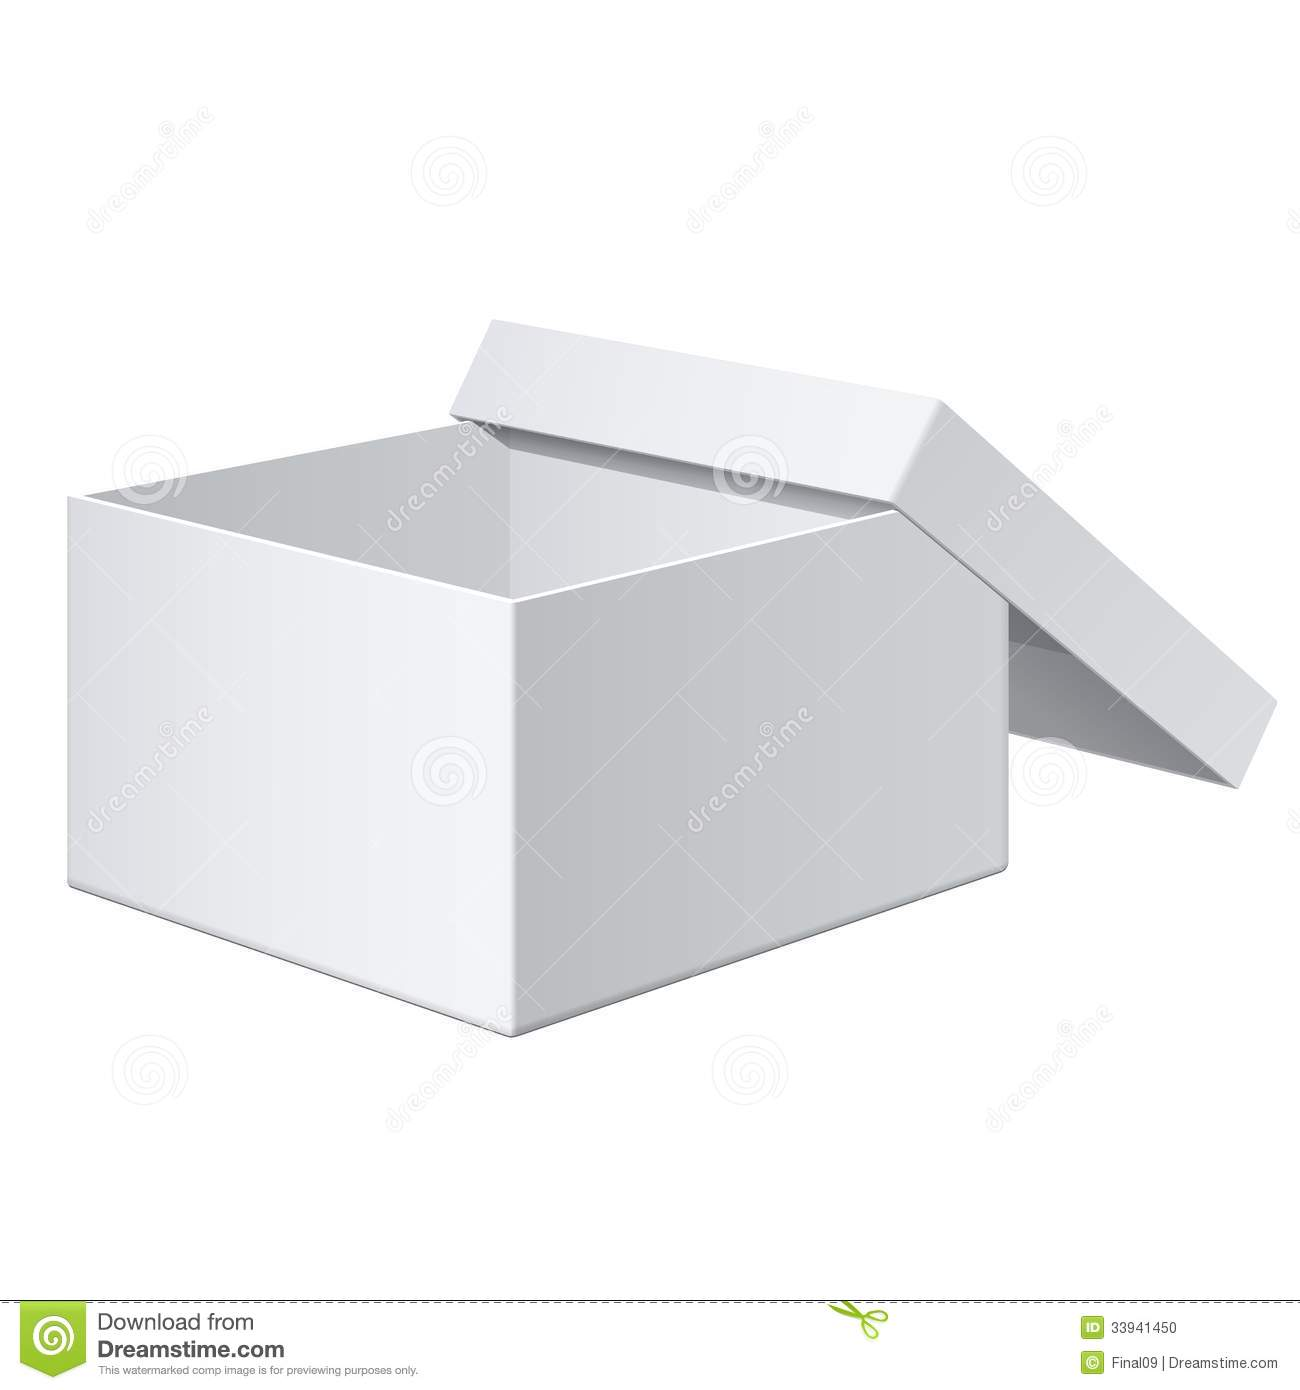 Realistic White Box For Electronic Device Vector Stock